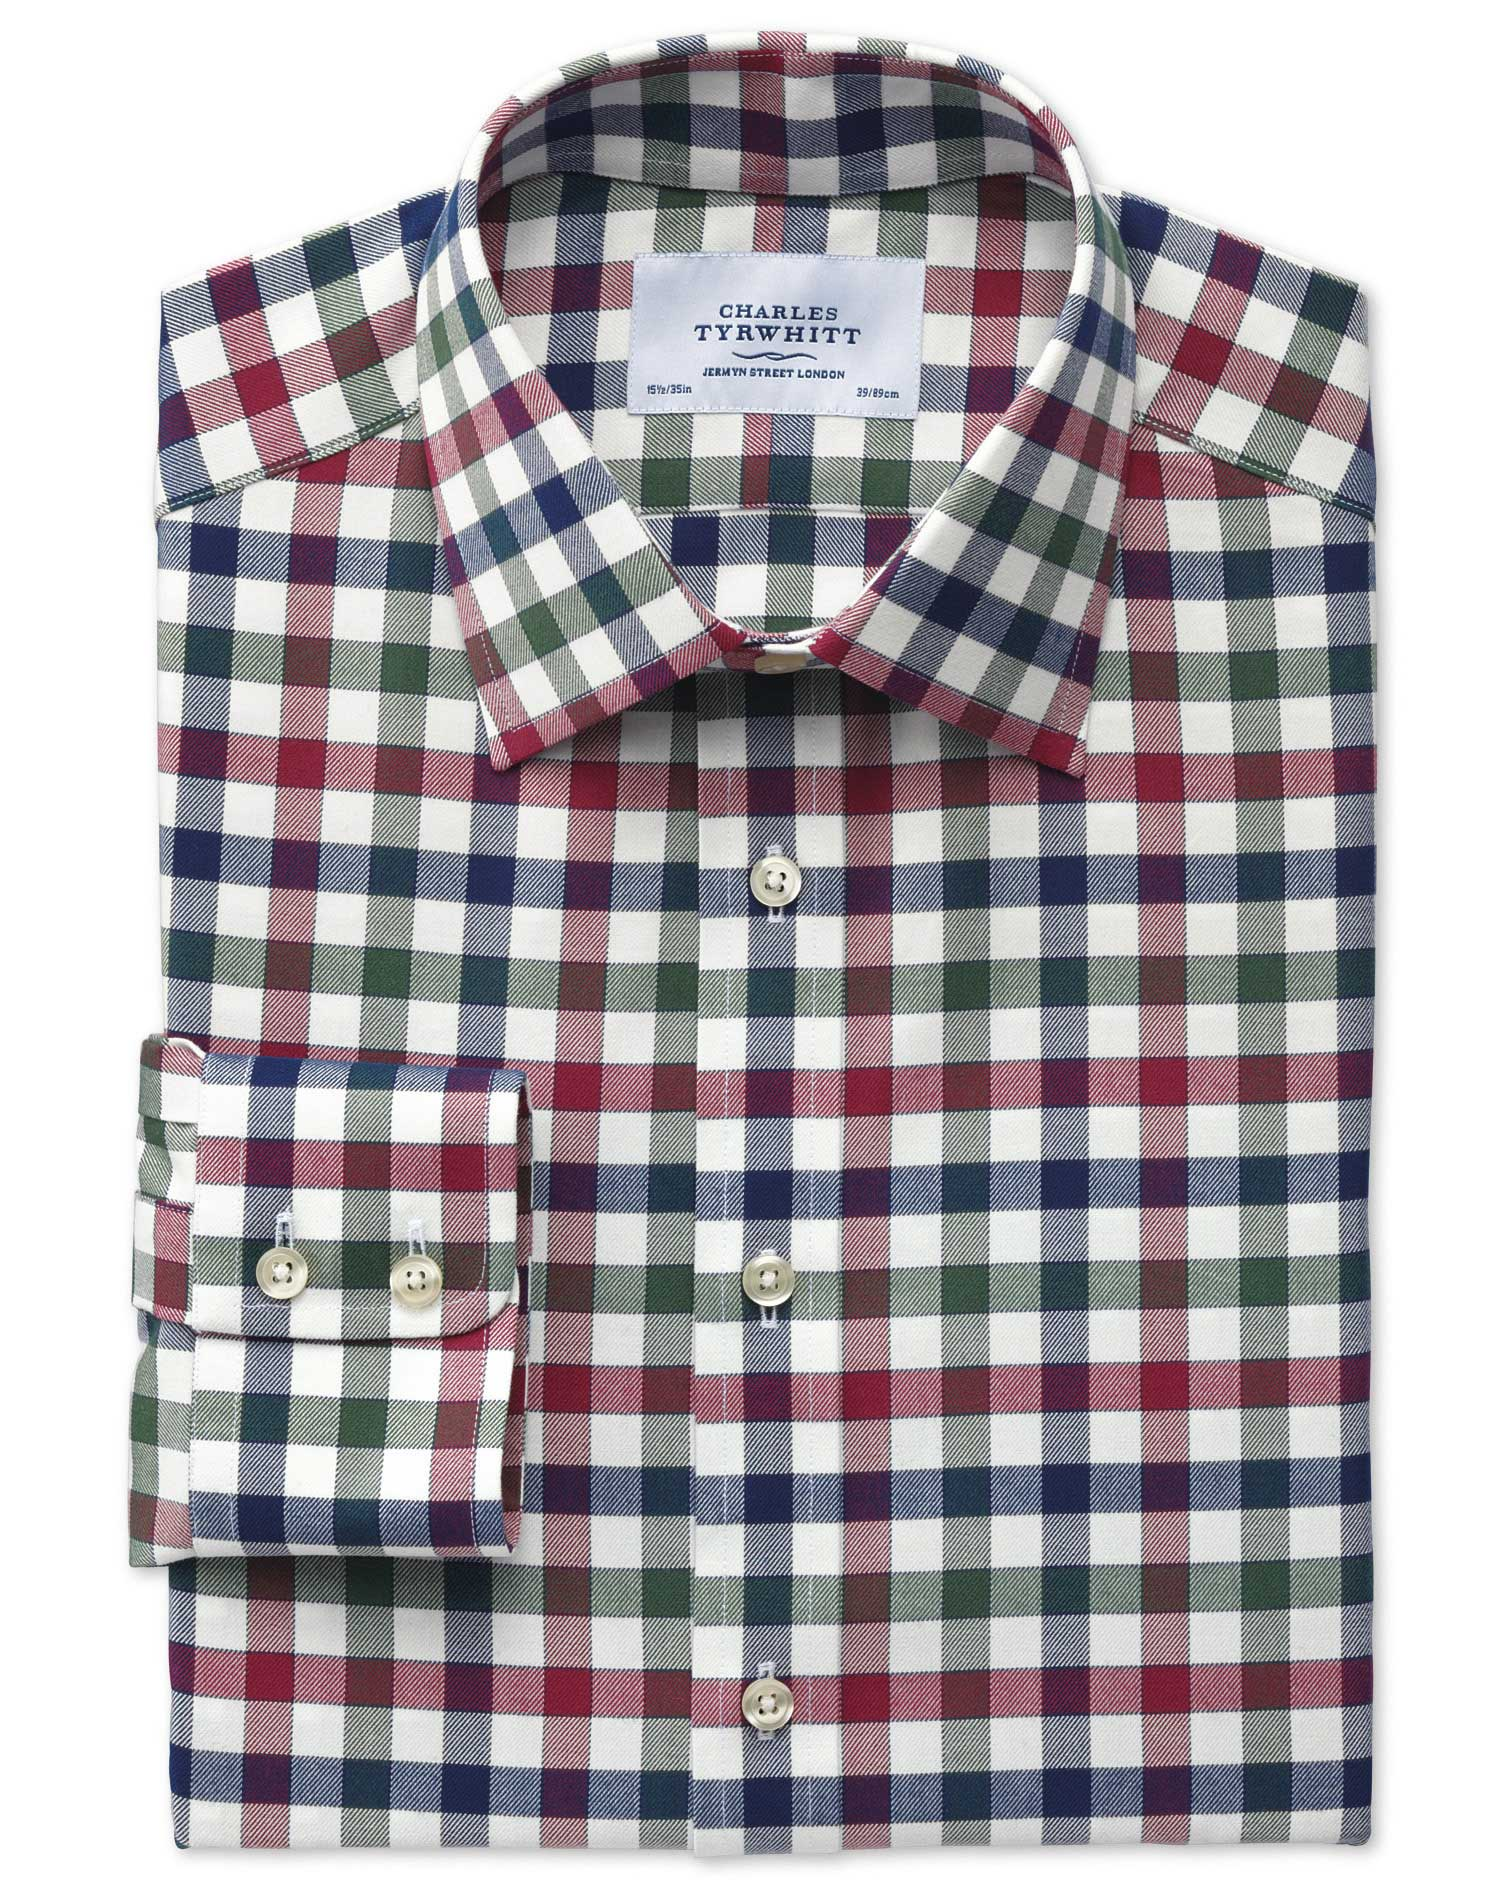 Extra Slim Fit Country Check Navy and Berry Cotton Formal Shirt Single Cuff Size 16/35 by Charles Ty